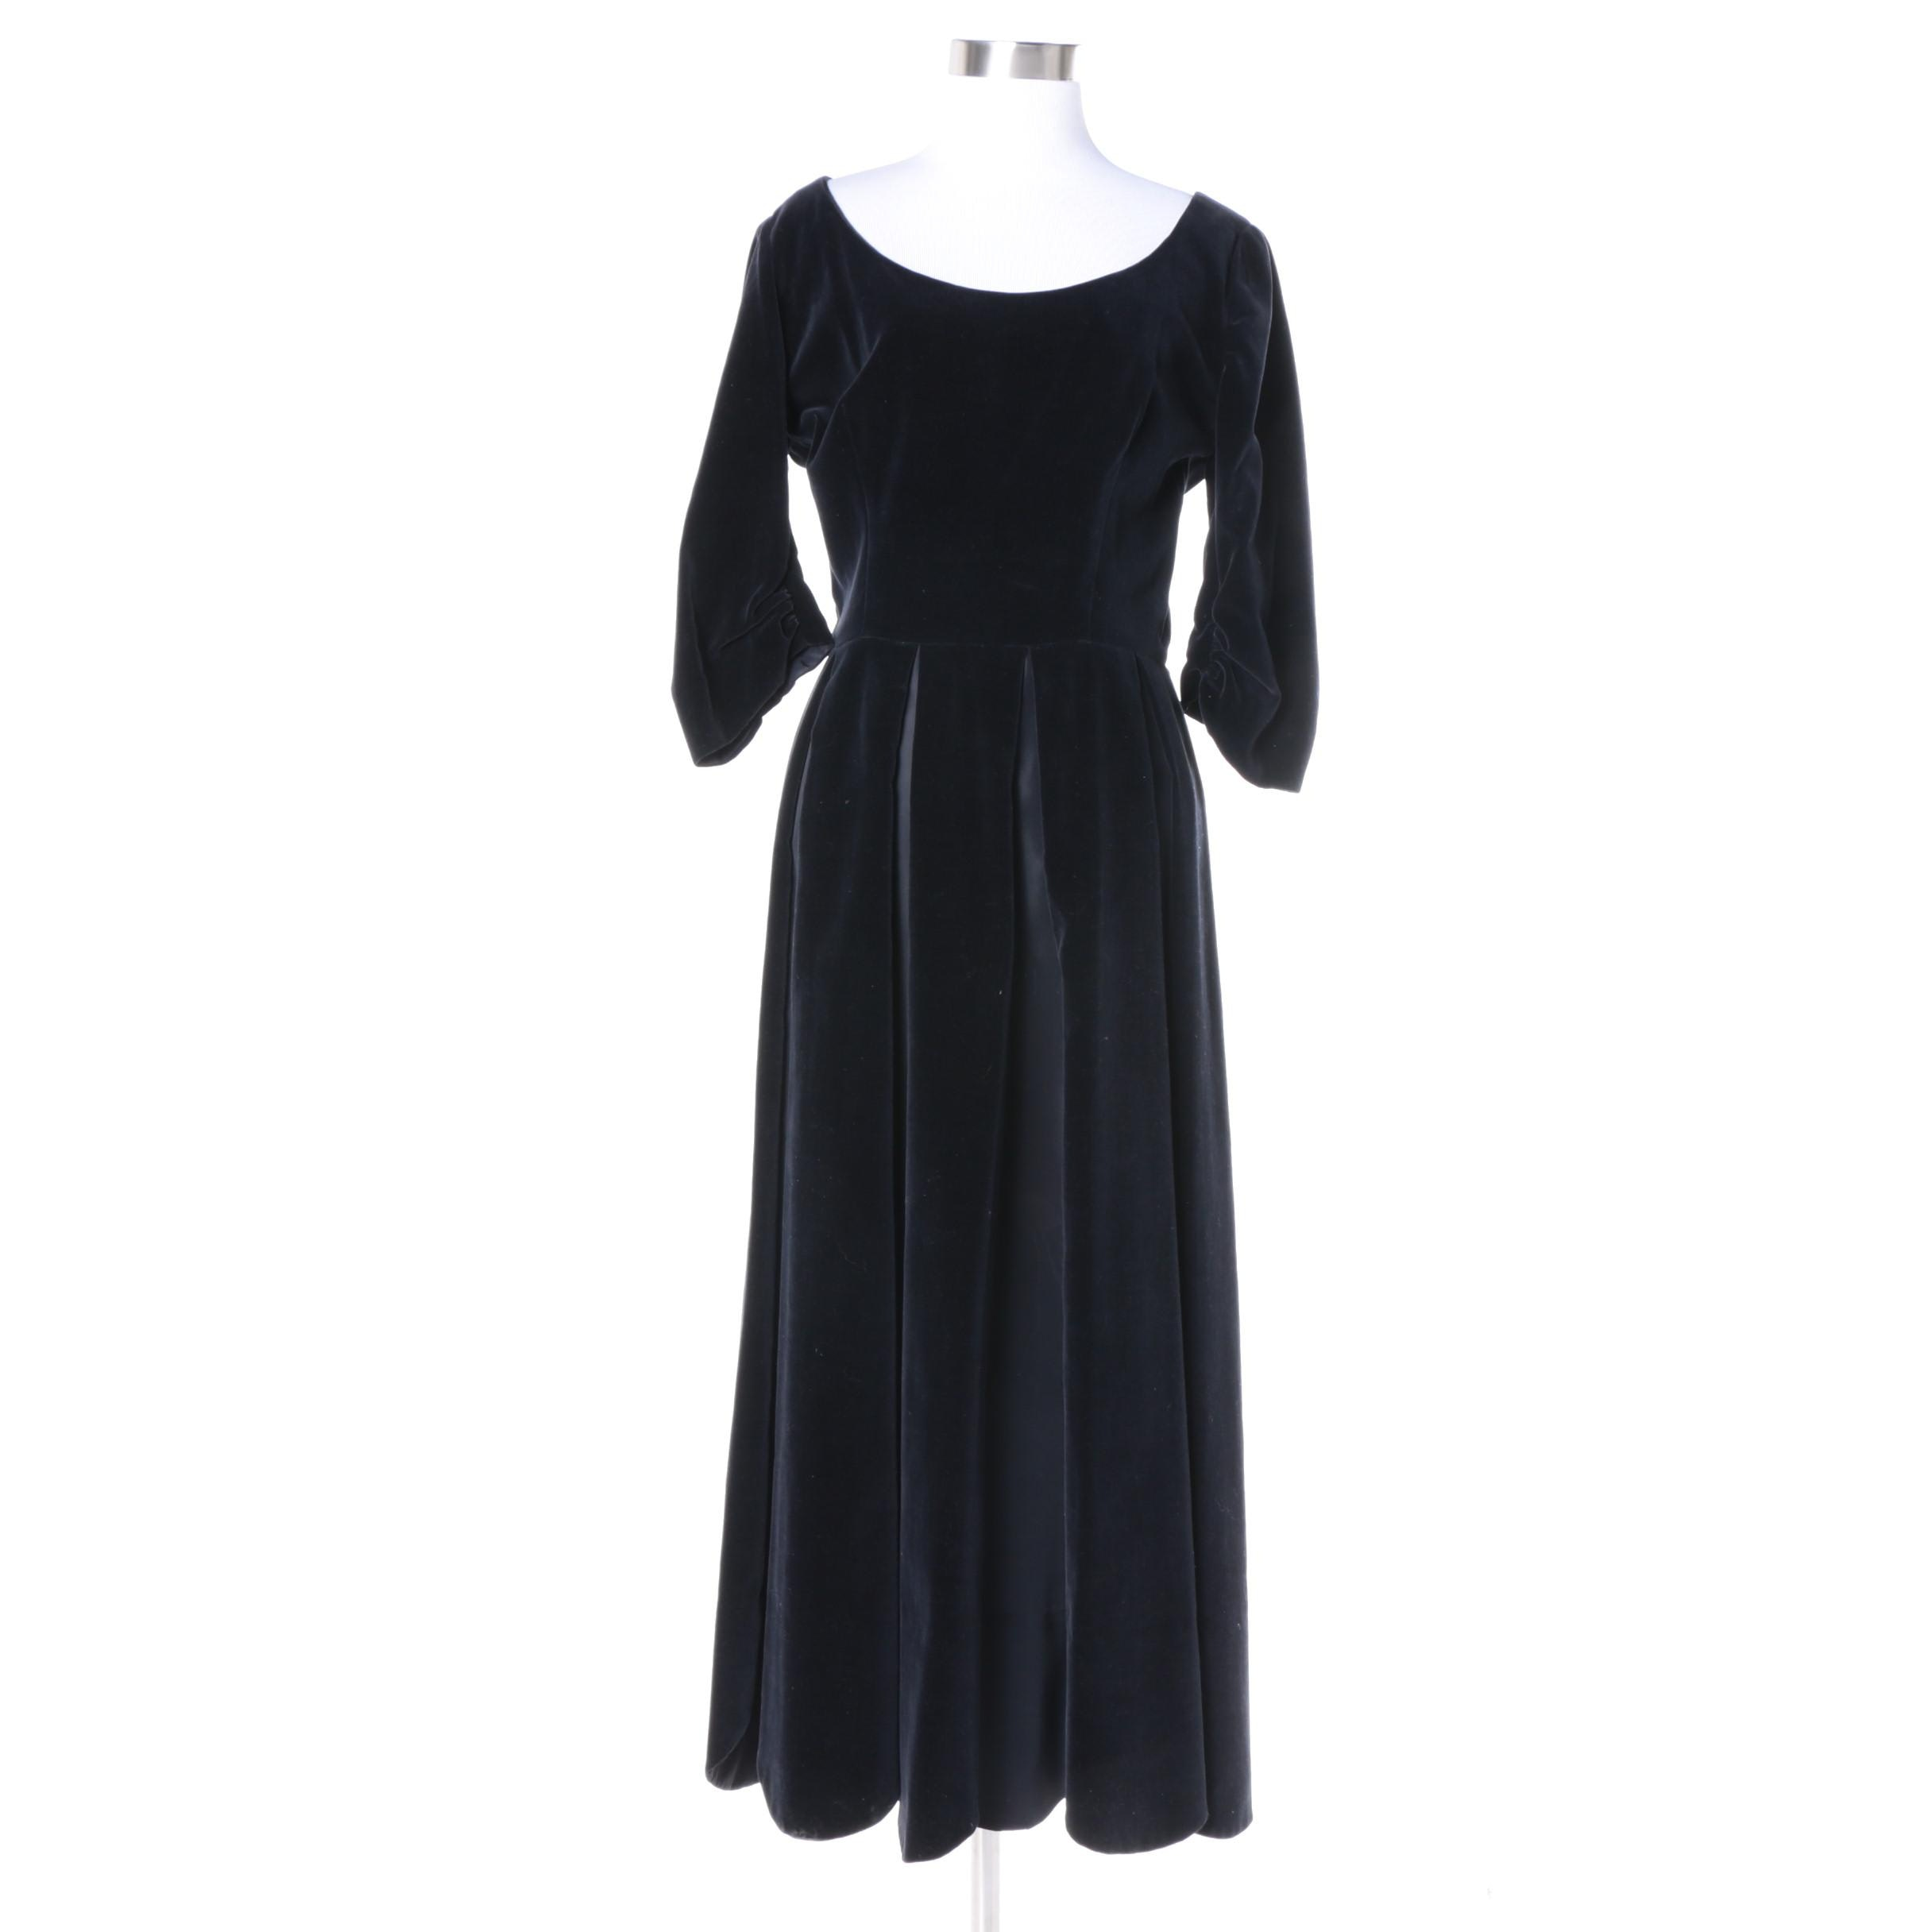 Vintage Velveteen Pleated Dress